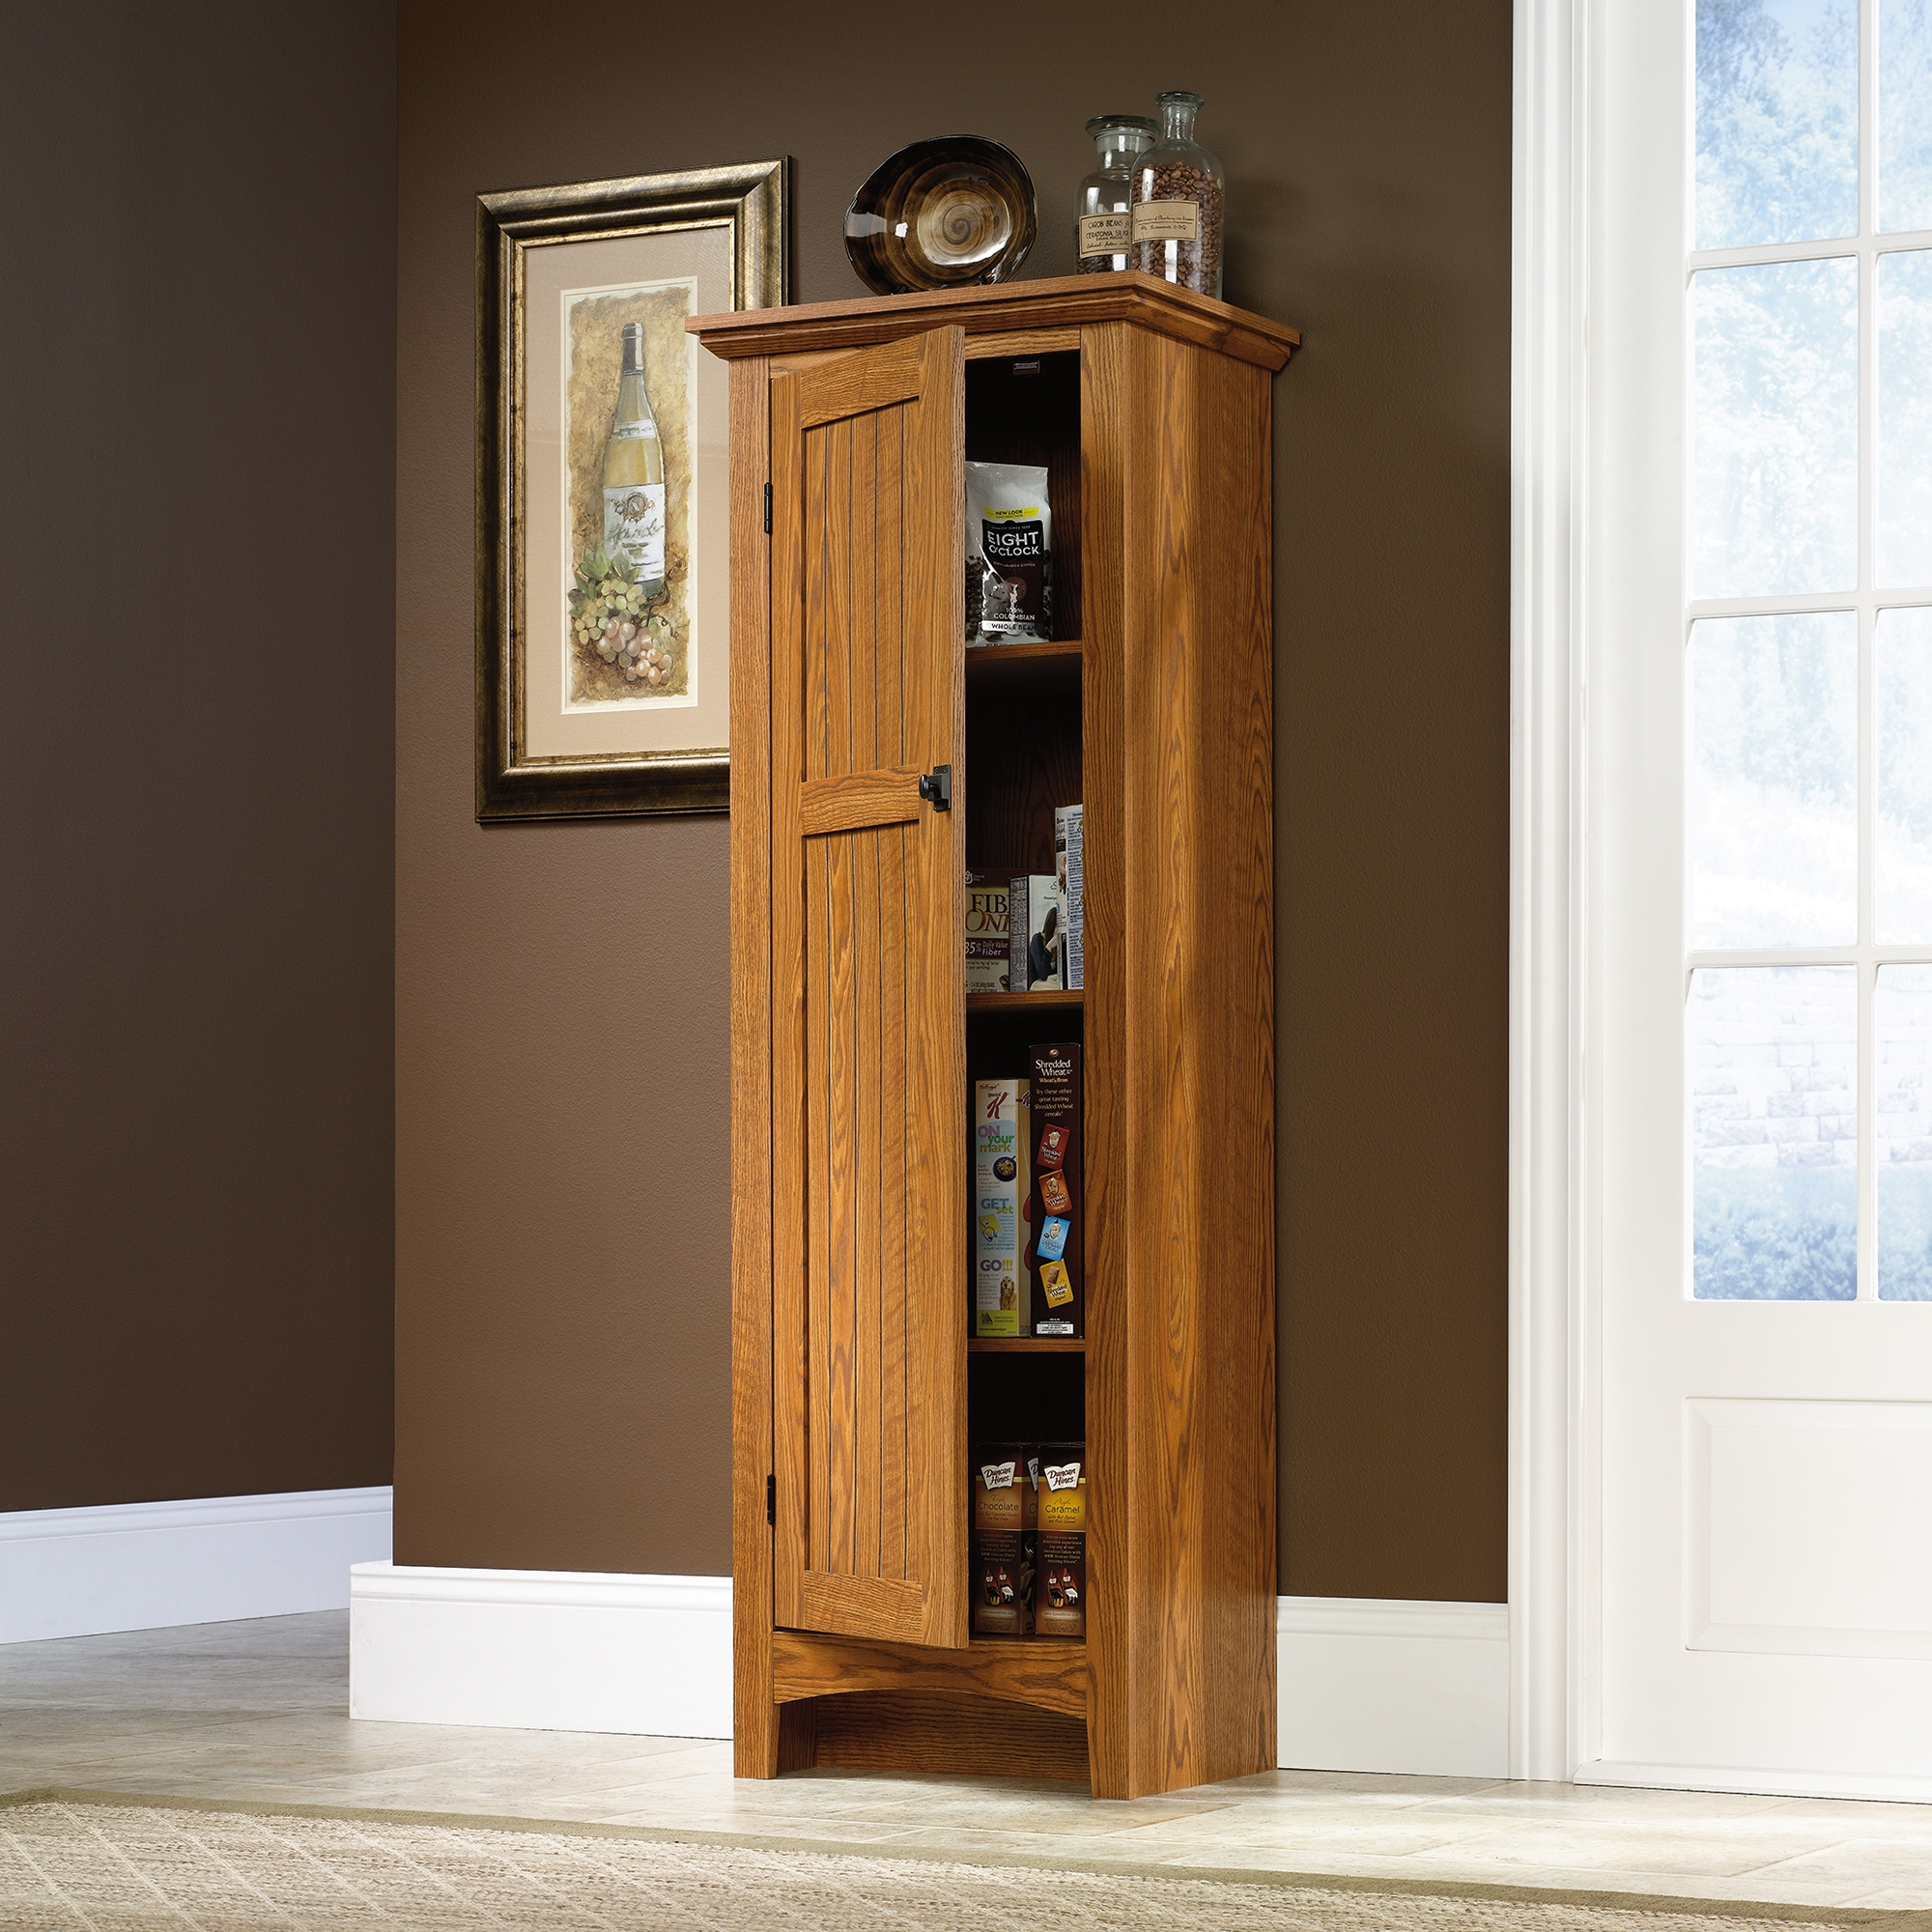 Permalink to Sauder Kitchen Pantry Cabinets